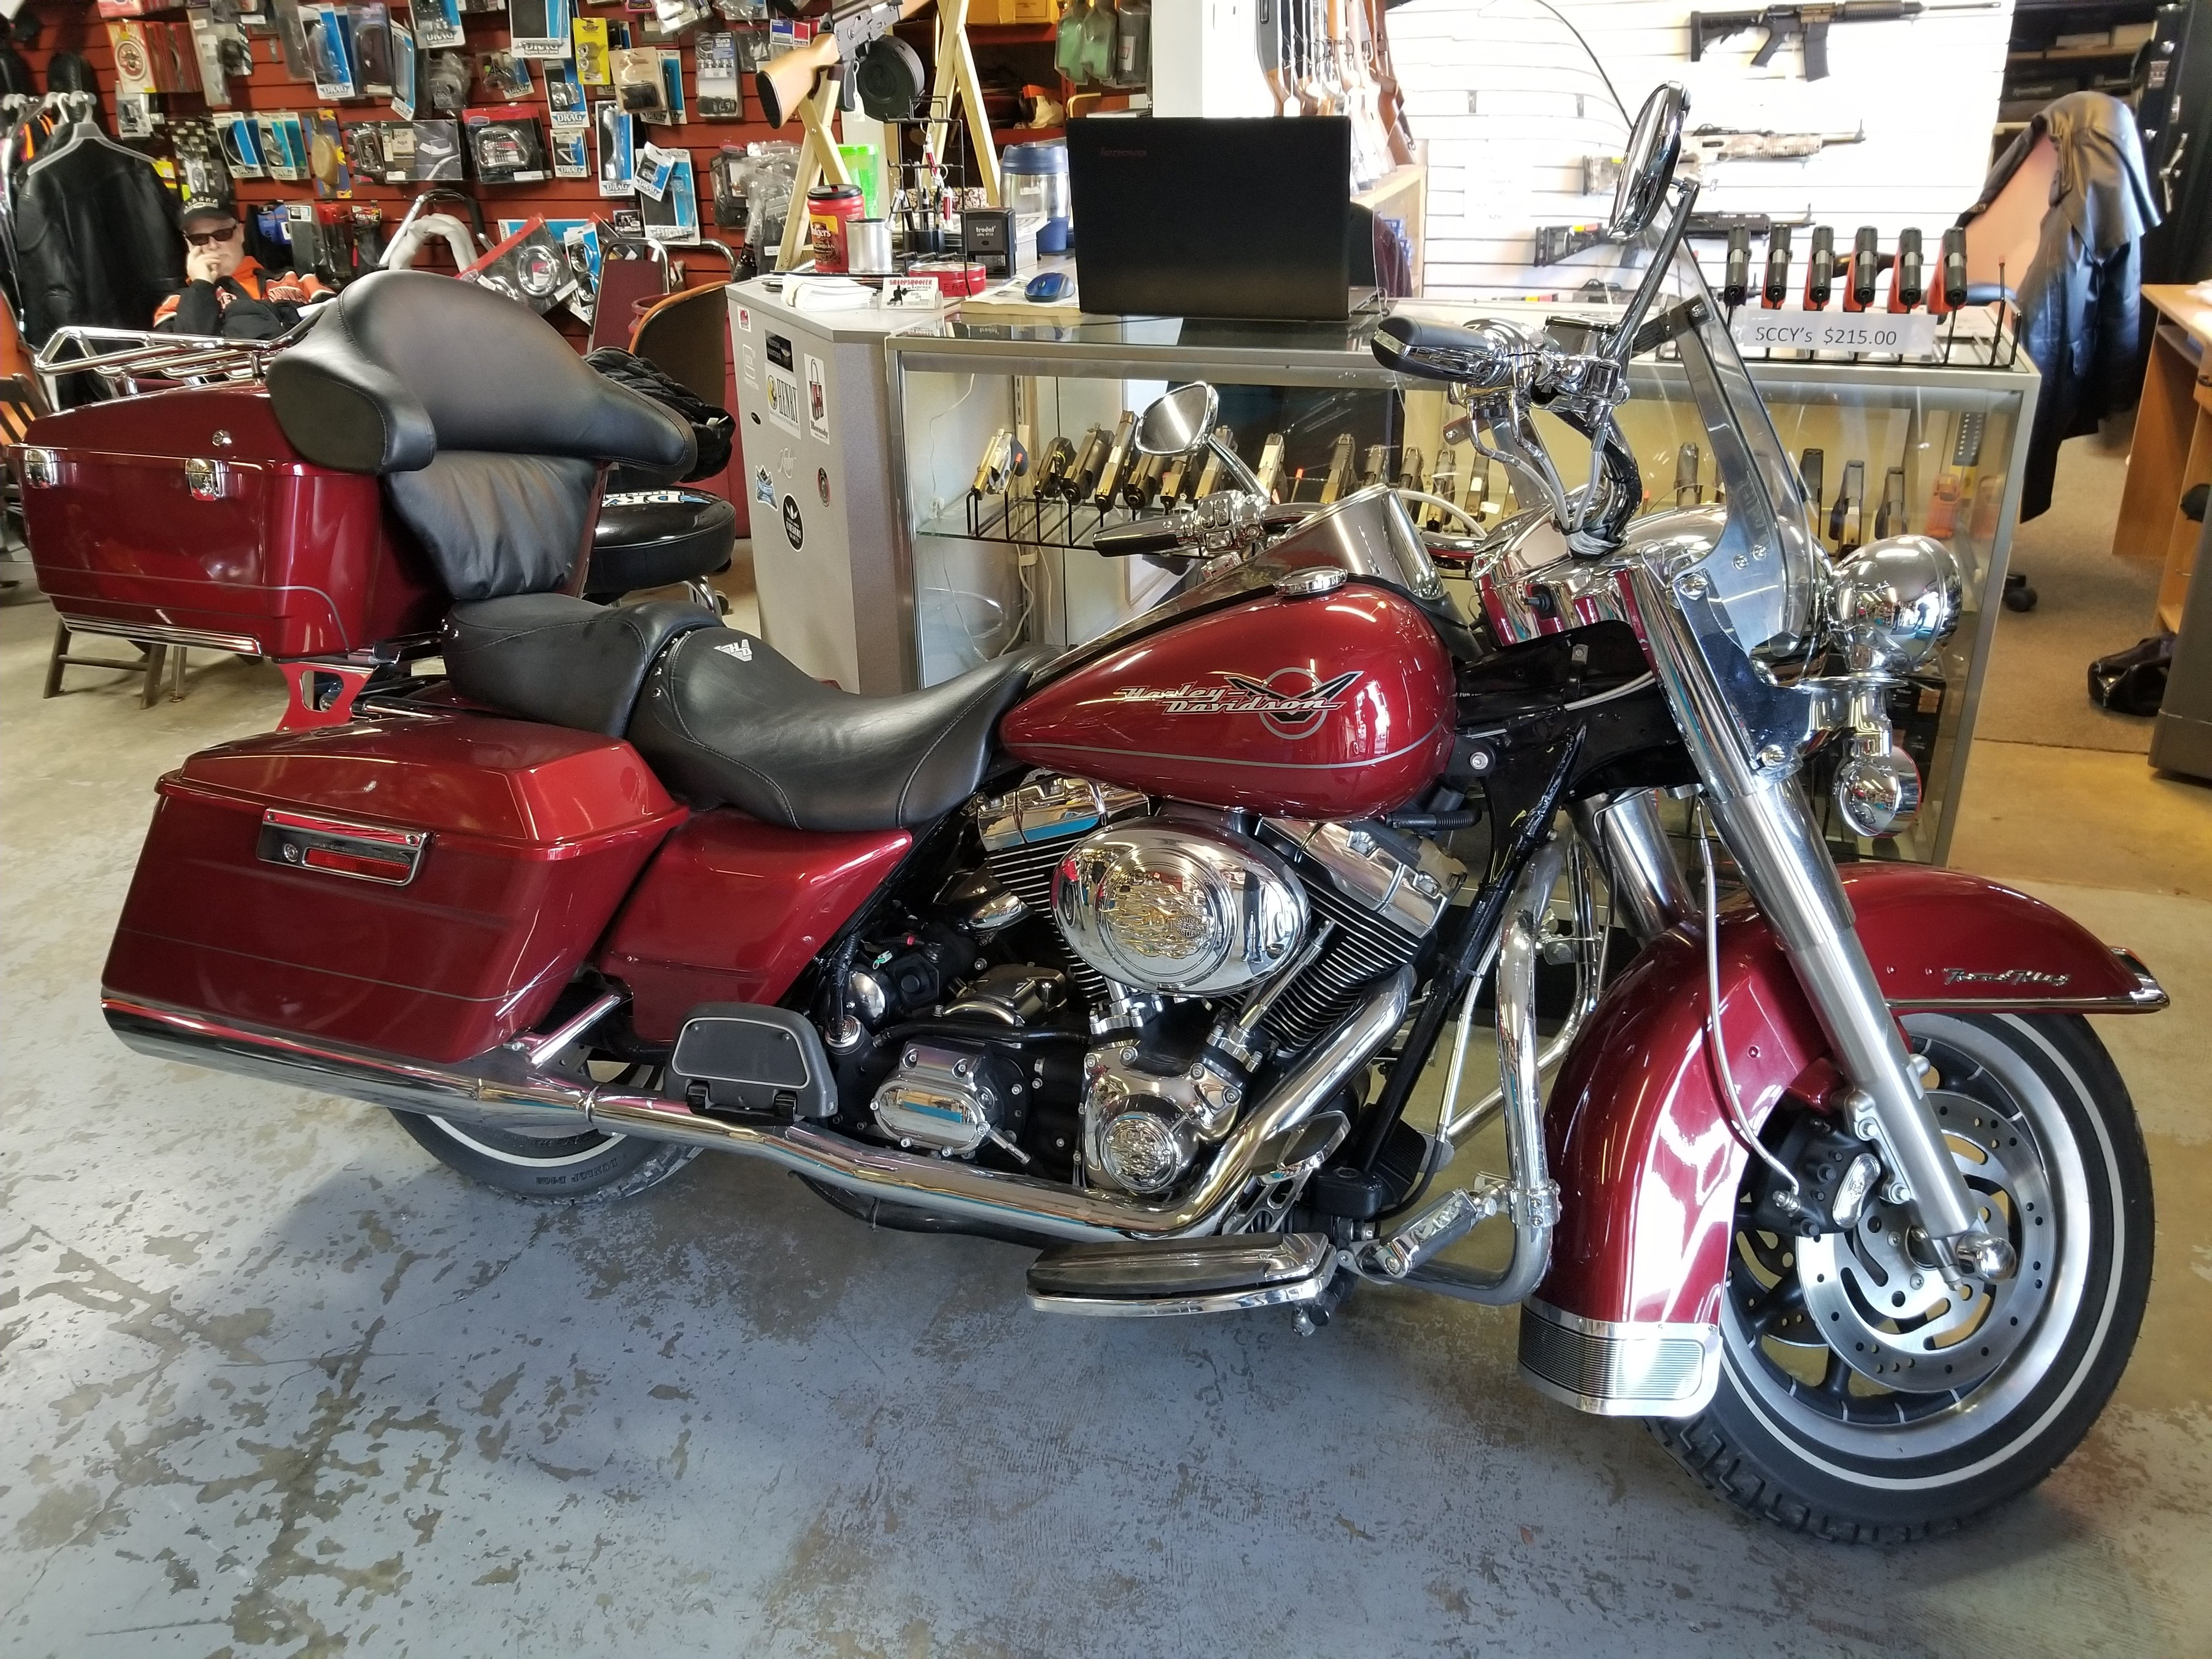 2006 Road King True dules, stage one, 11,000 miles $10,500